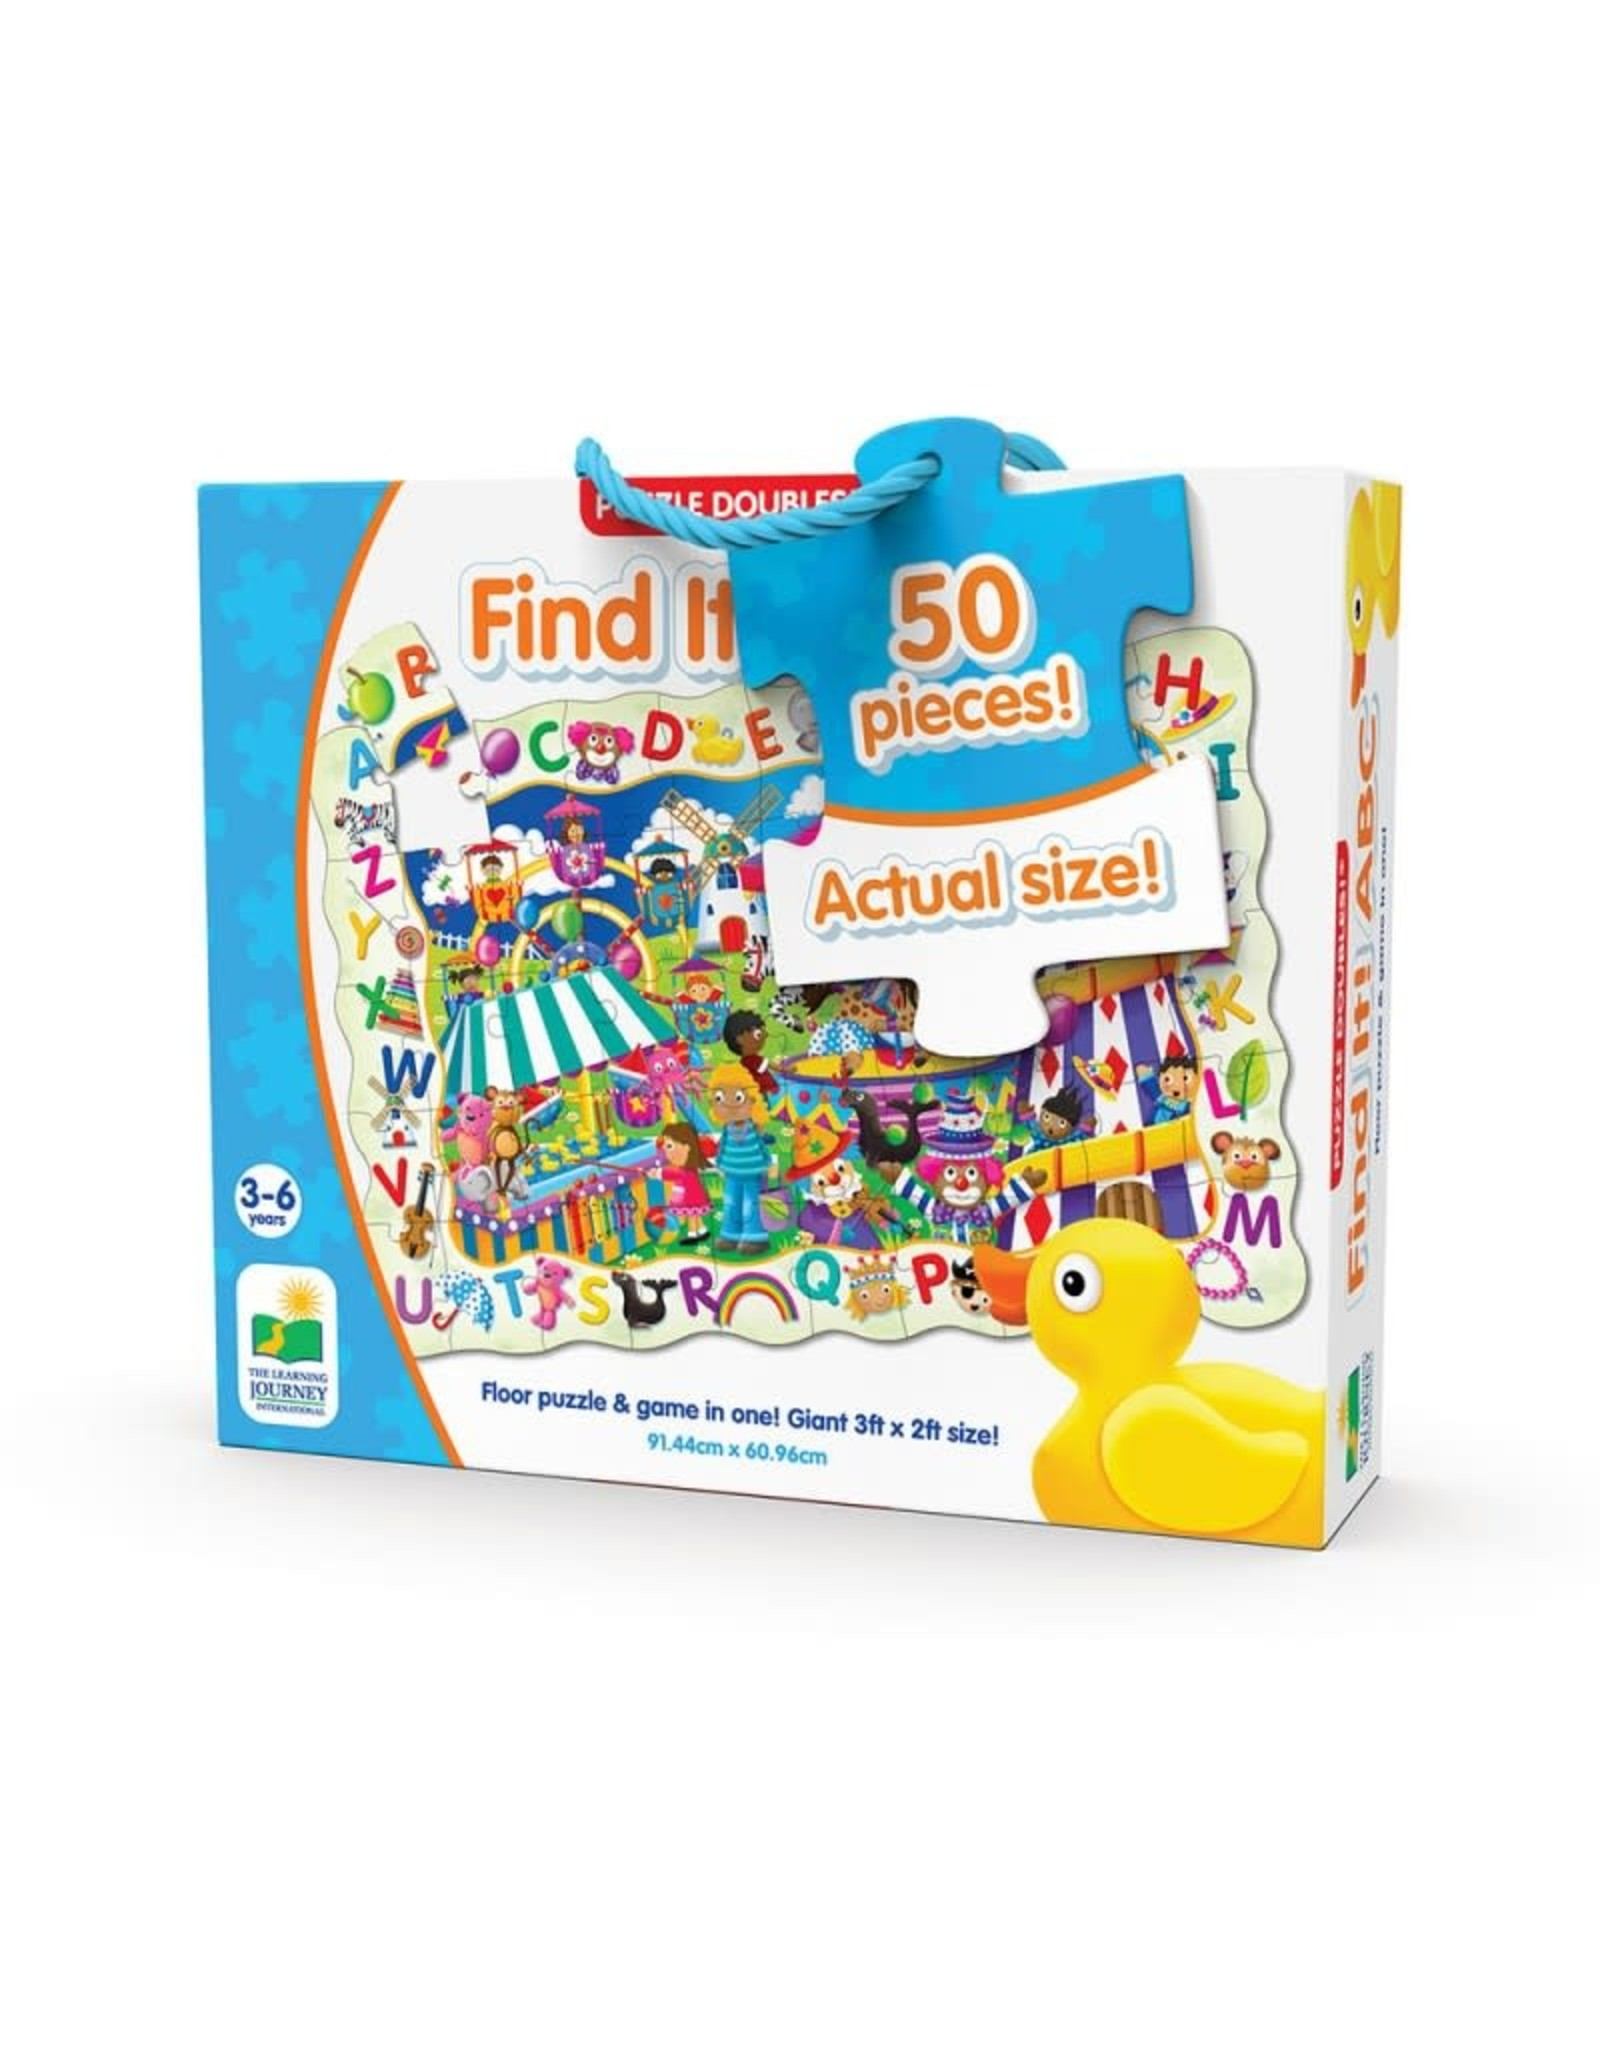 The Learning Journey Puzzle Doubles Find It! ABC